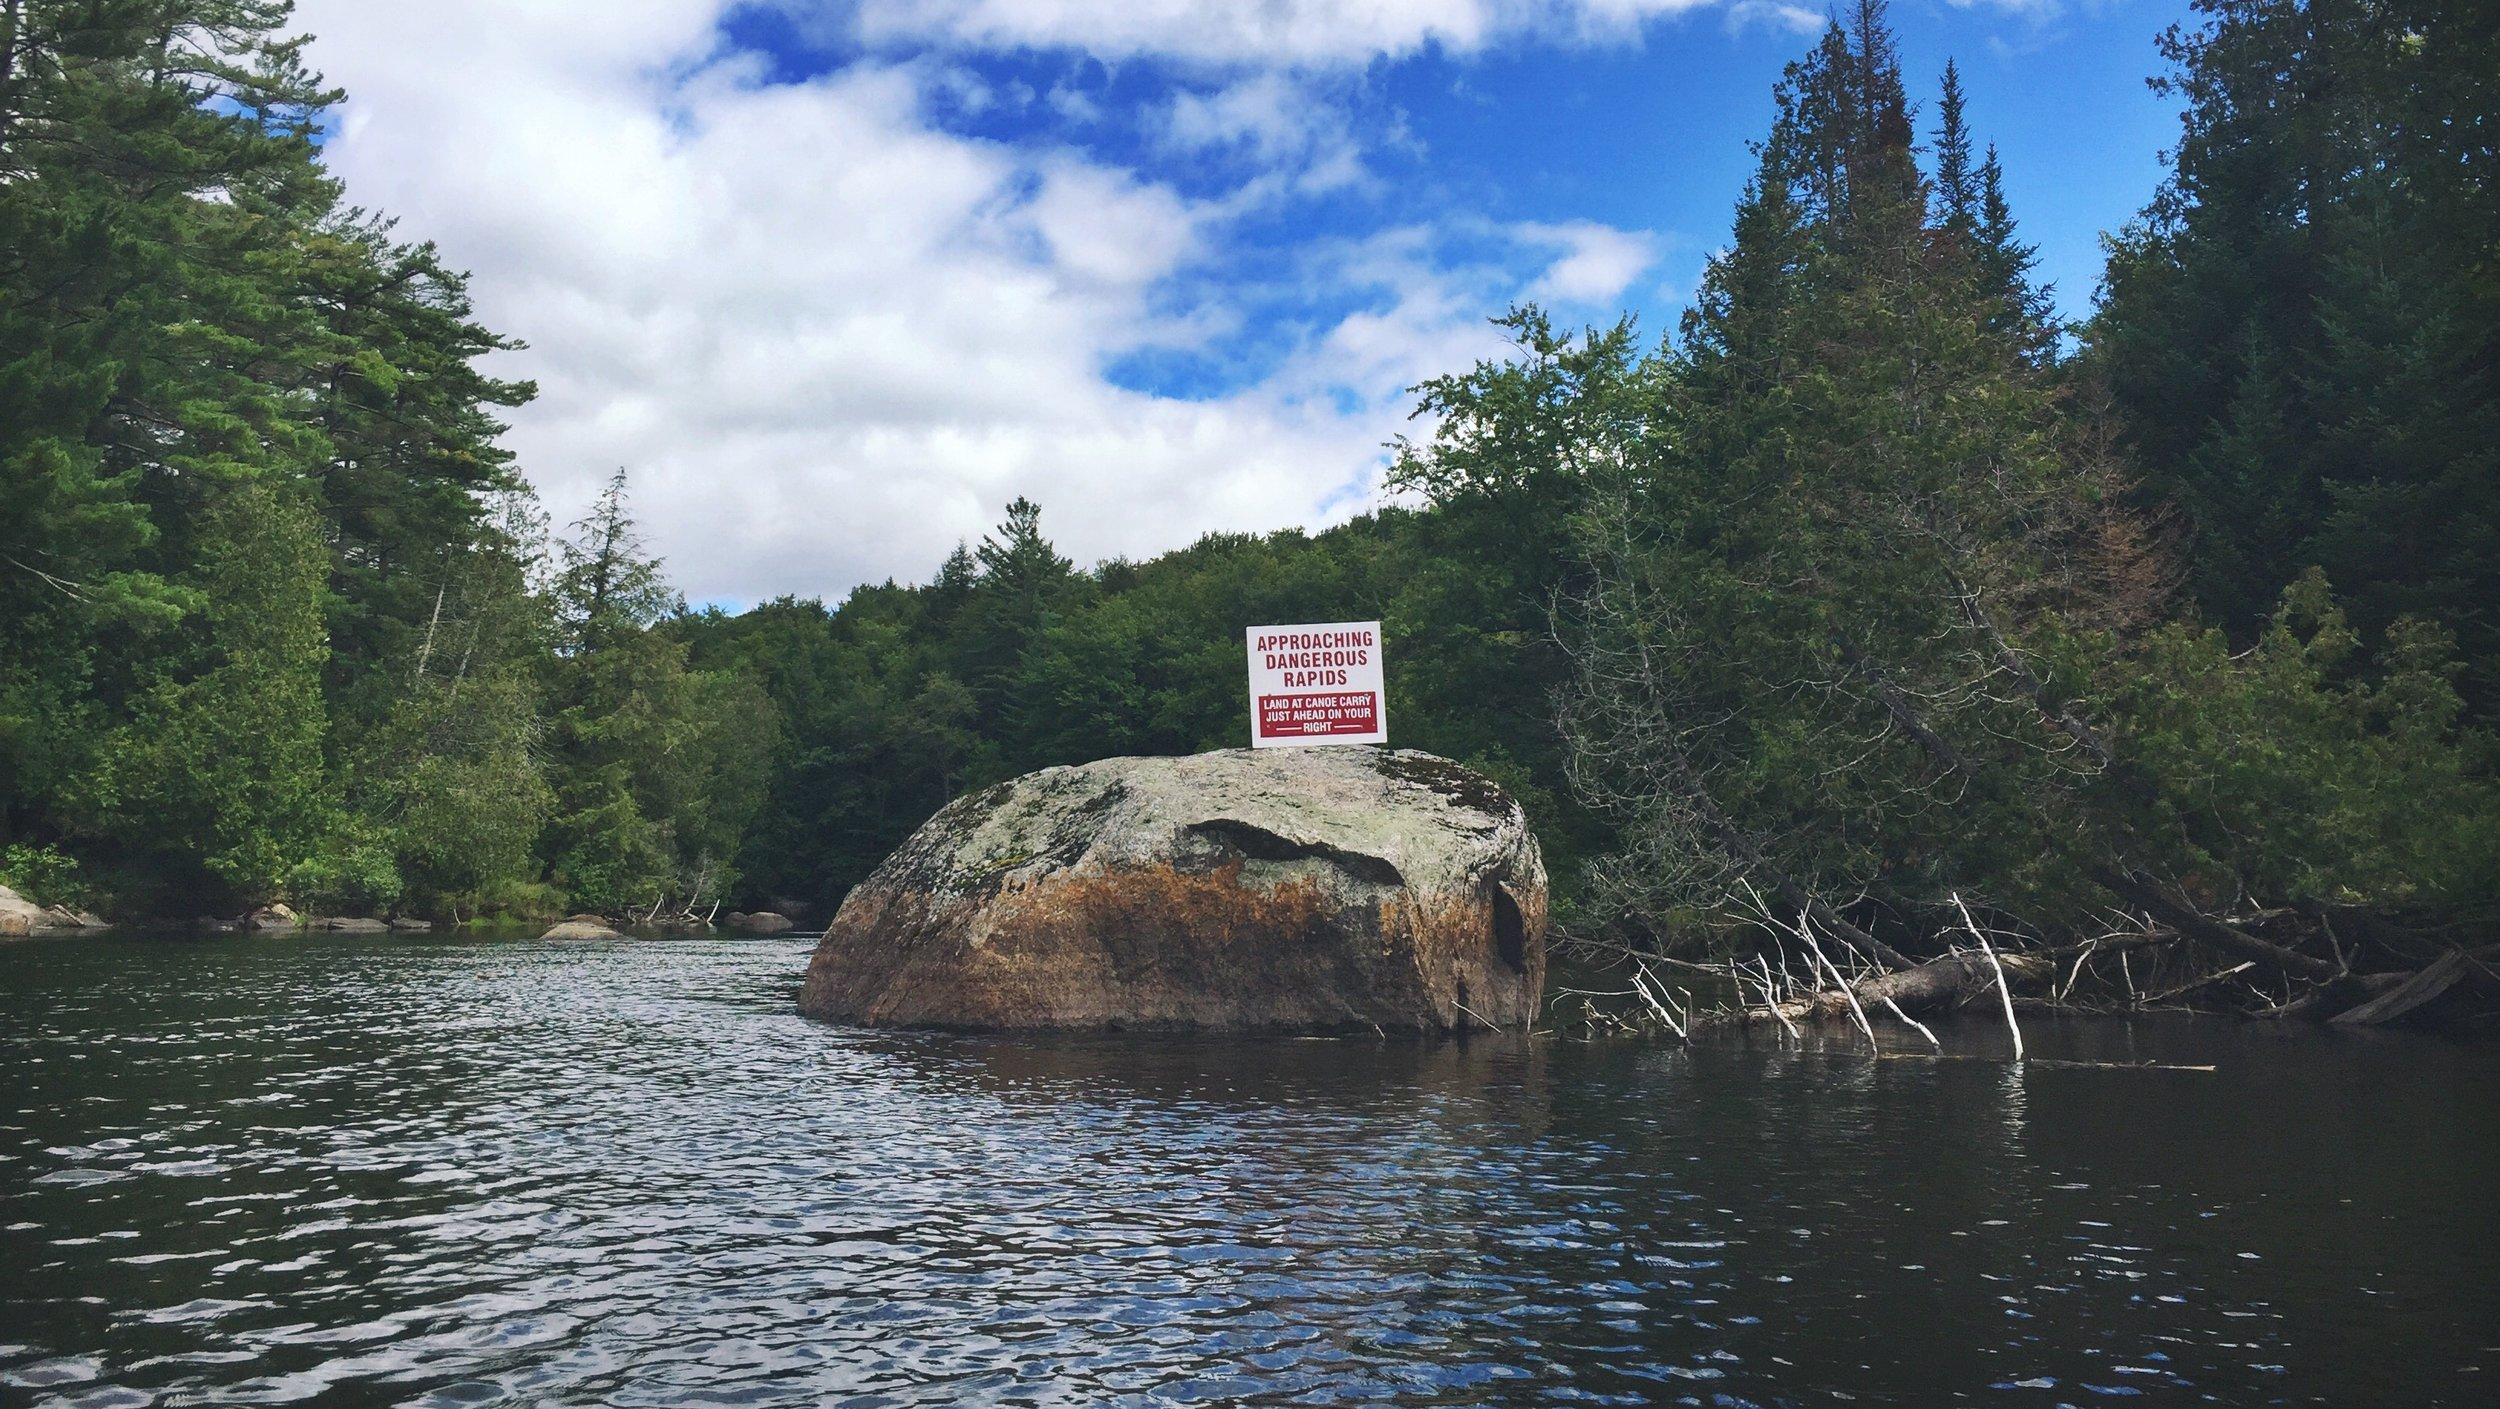 Warning sign for the upcoming waterfalls